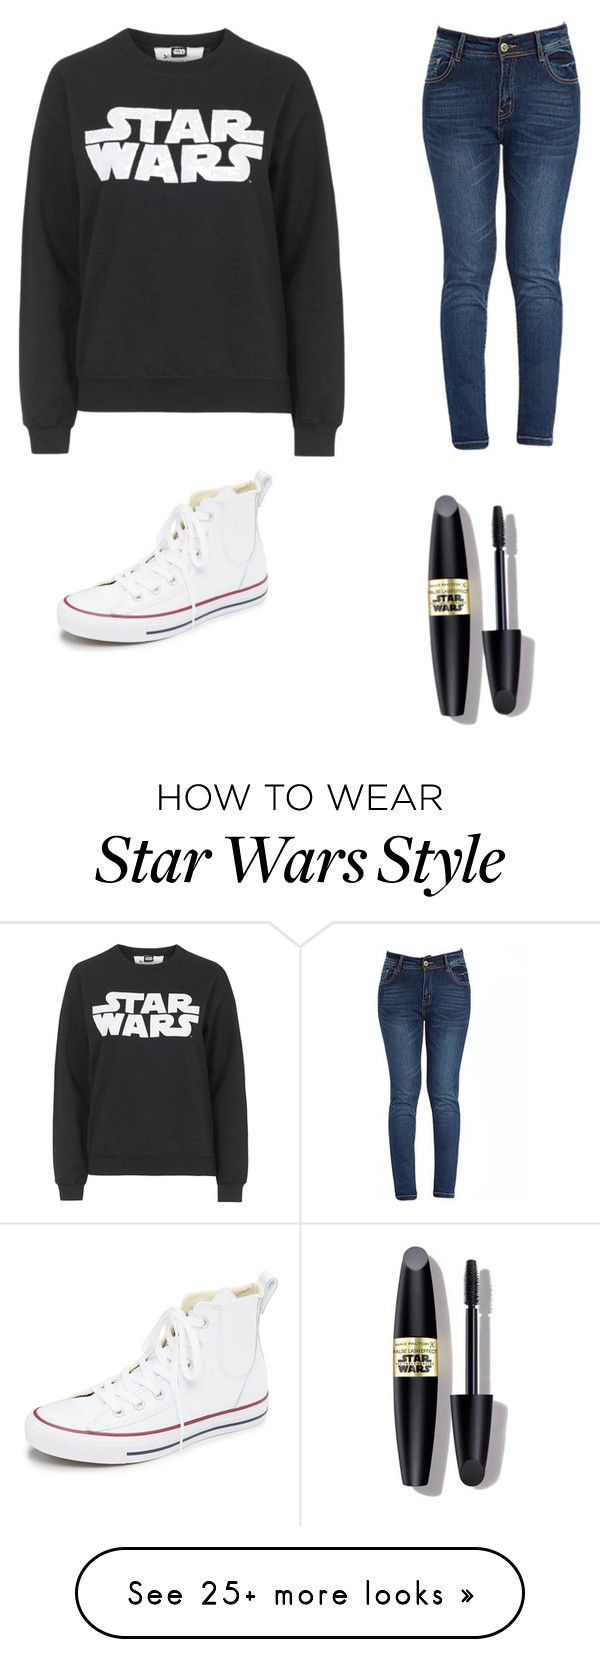 """Star Wars"" by paytonklug on Polyvore featuring Tee and Cake, Converse, Max Factor, women's clothing, women's fashion, women, female, woman, misses and juniors"